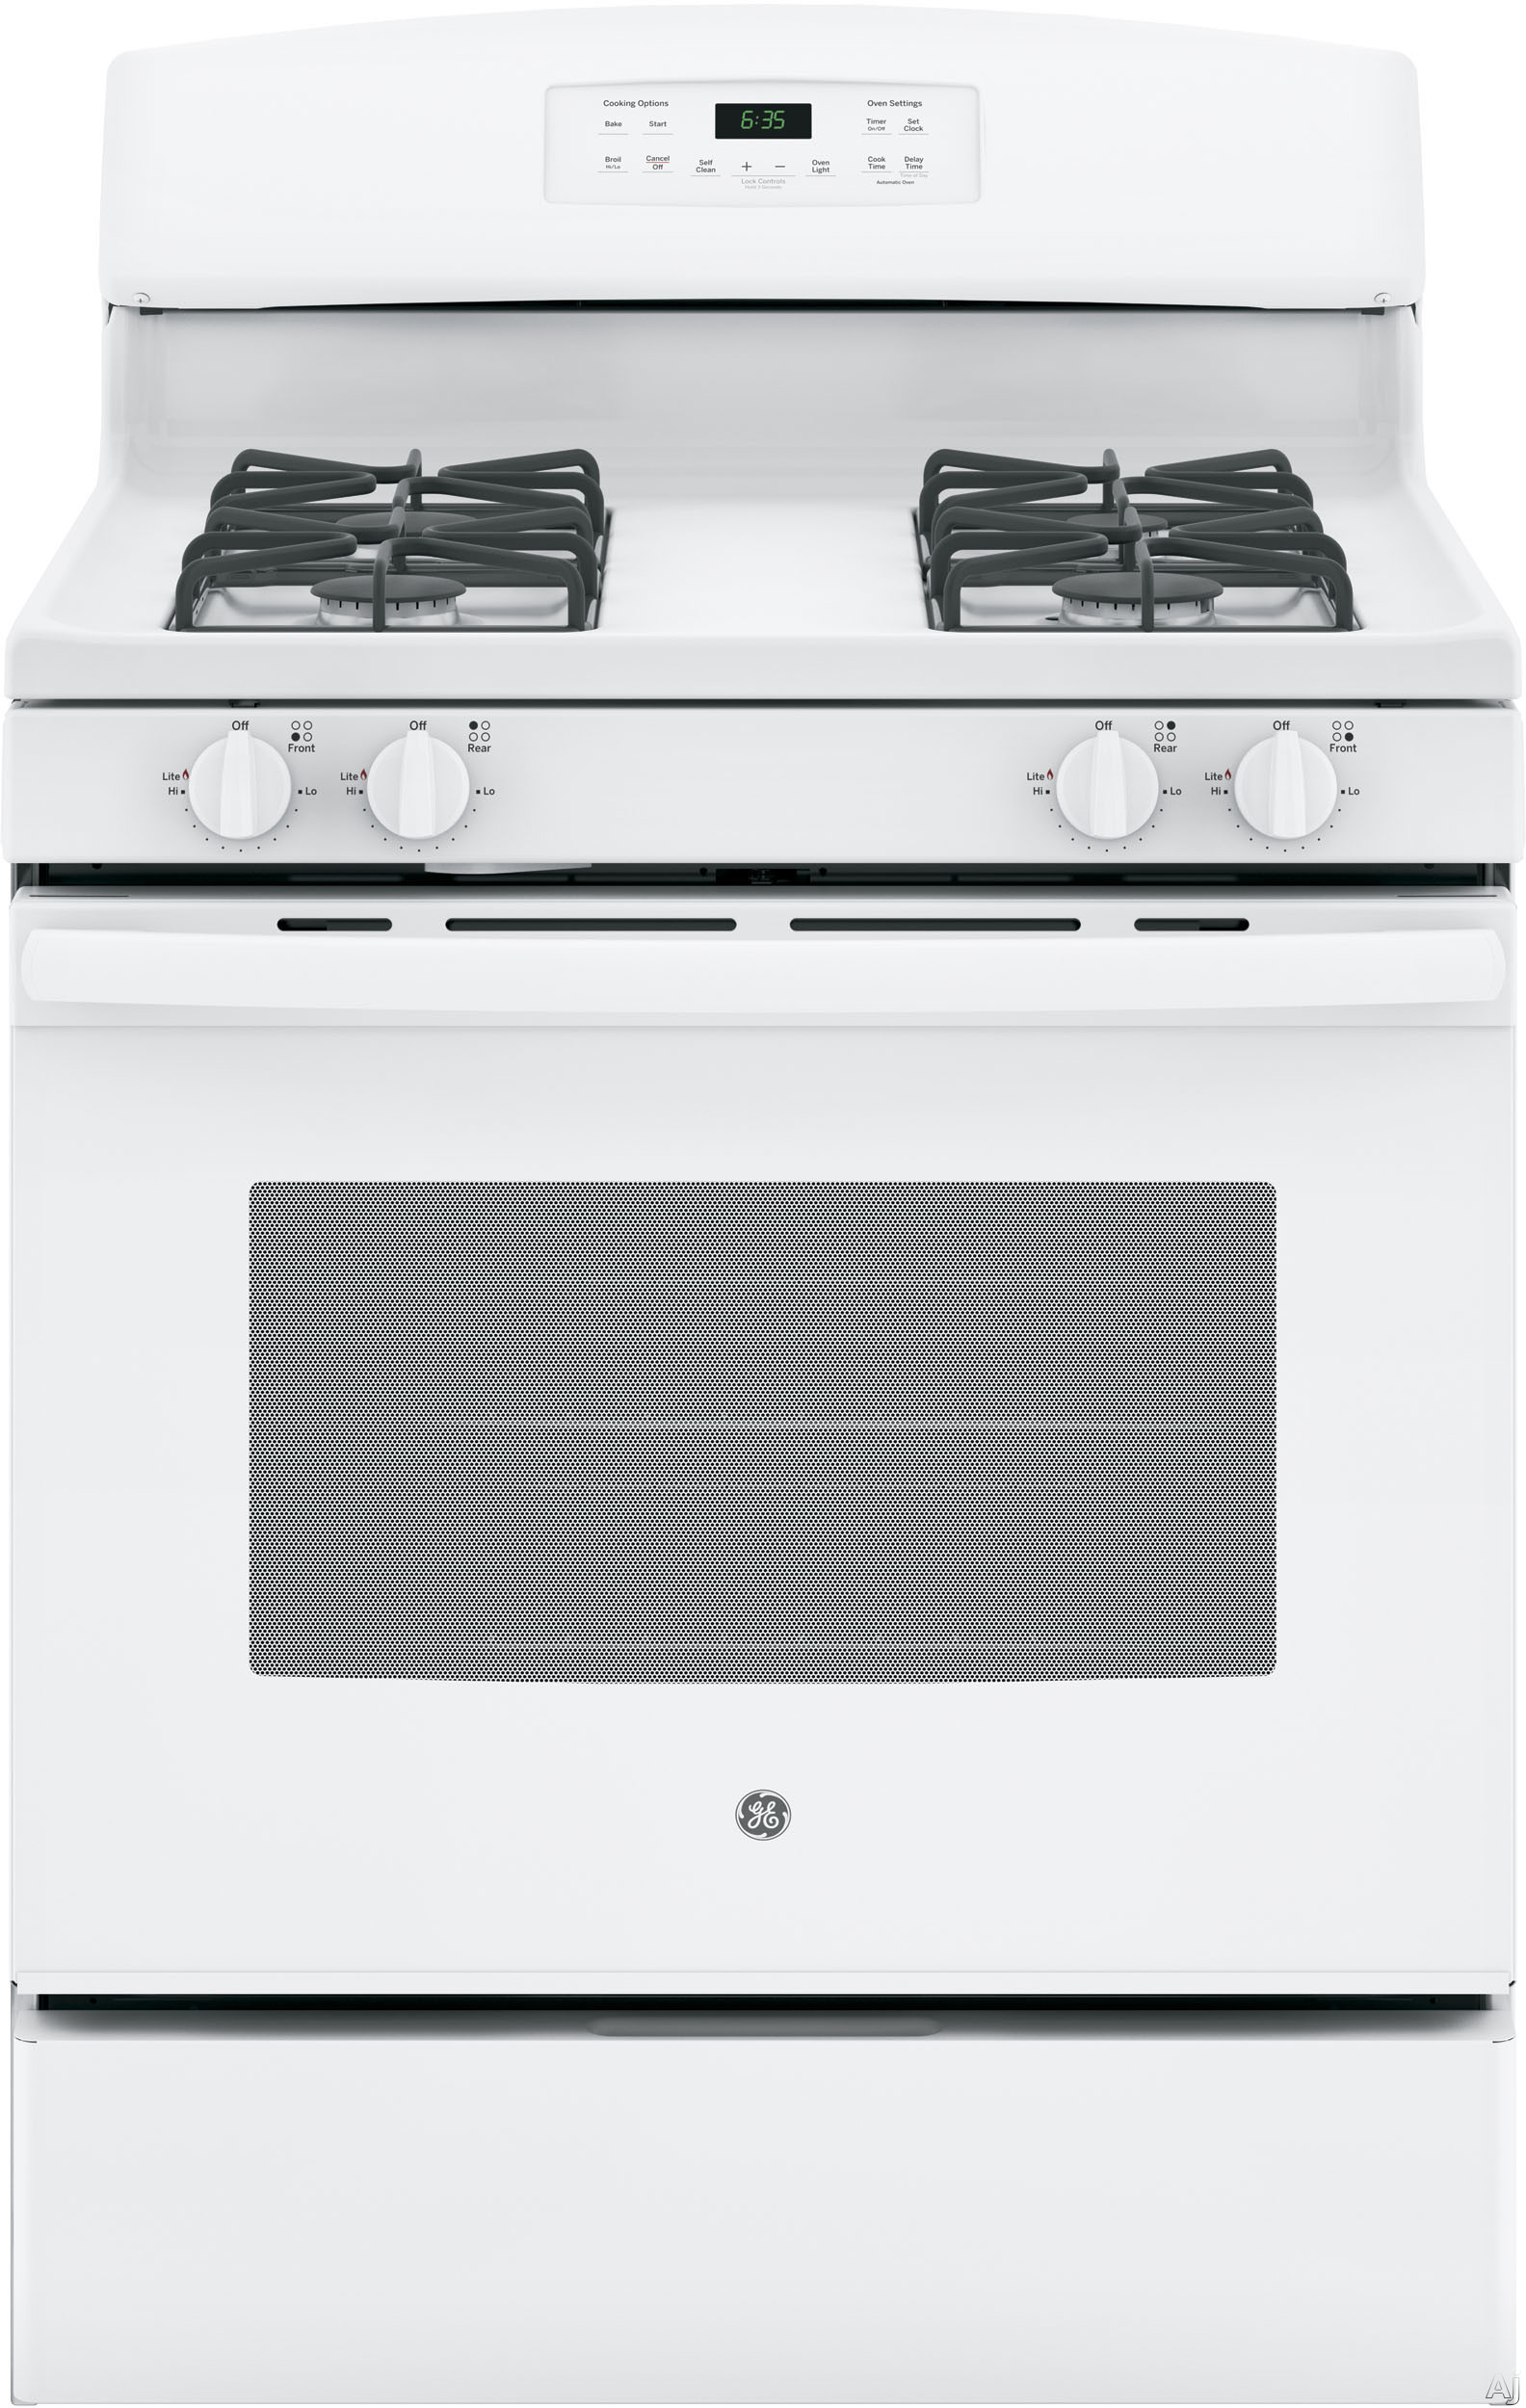 GE JGB635DEKWW 30 Inch Freestanding Gas Range with Precise Simmer Burner, Storage Drawer, Self-Clean, In-Oven Broiler, 4 Sealed Burners, 5.0 cu. ft. Capacity and Star-K Certified: White